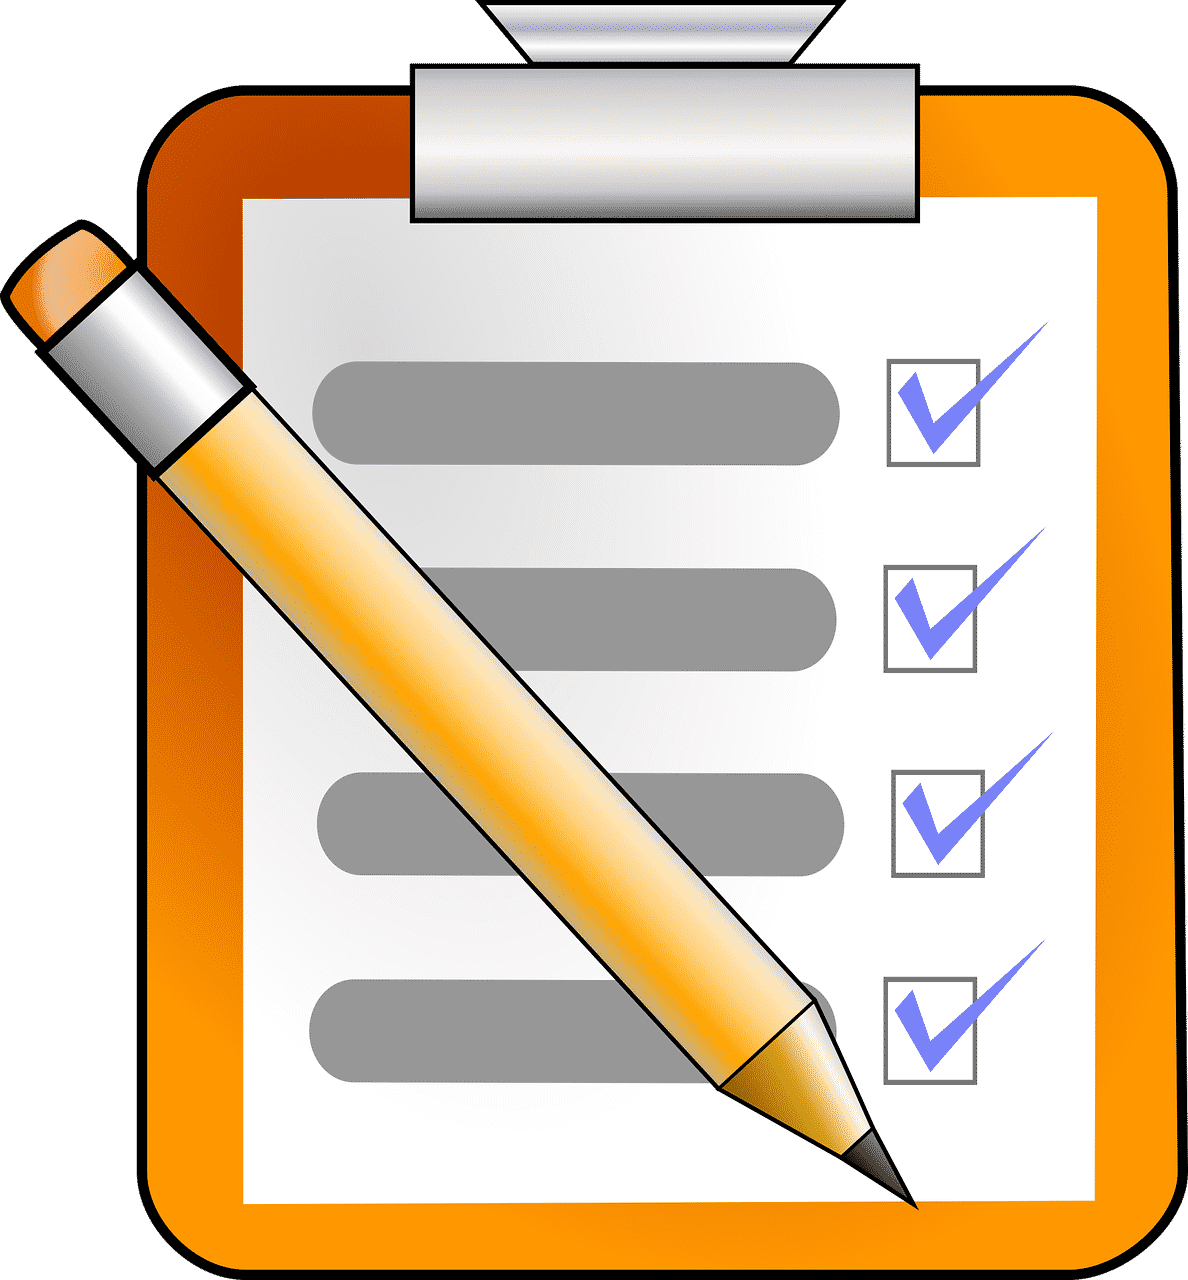 Home Seller's Checklist: Here's How to Prepare for an Inspection